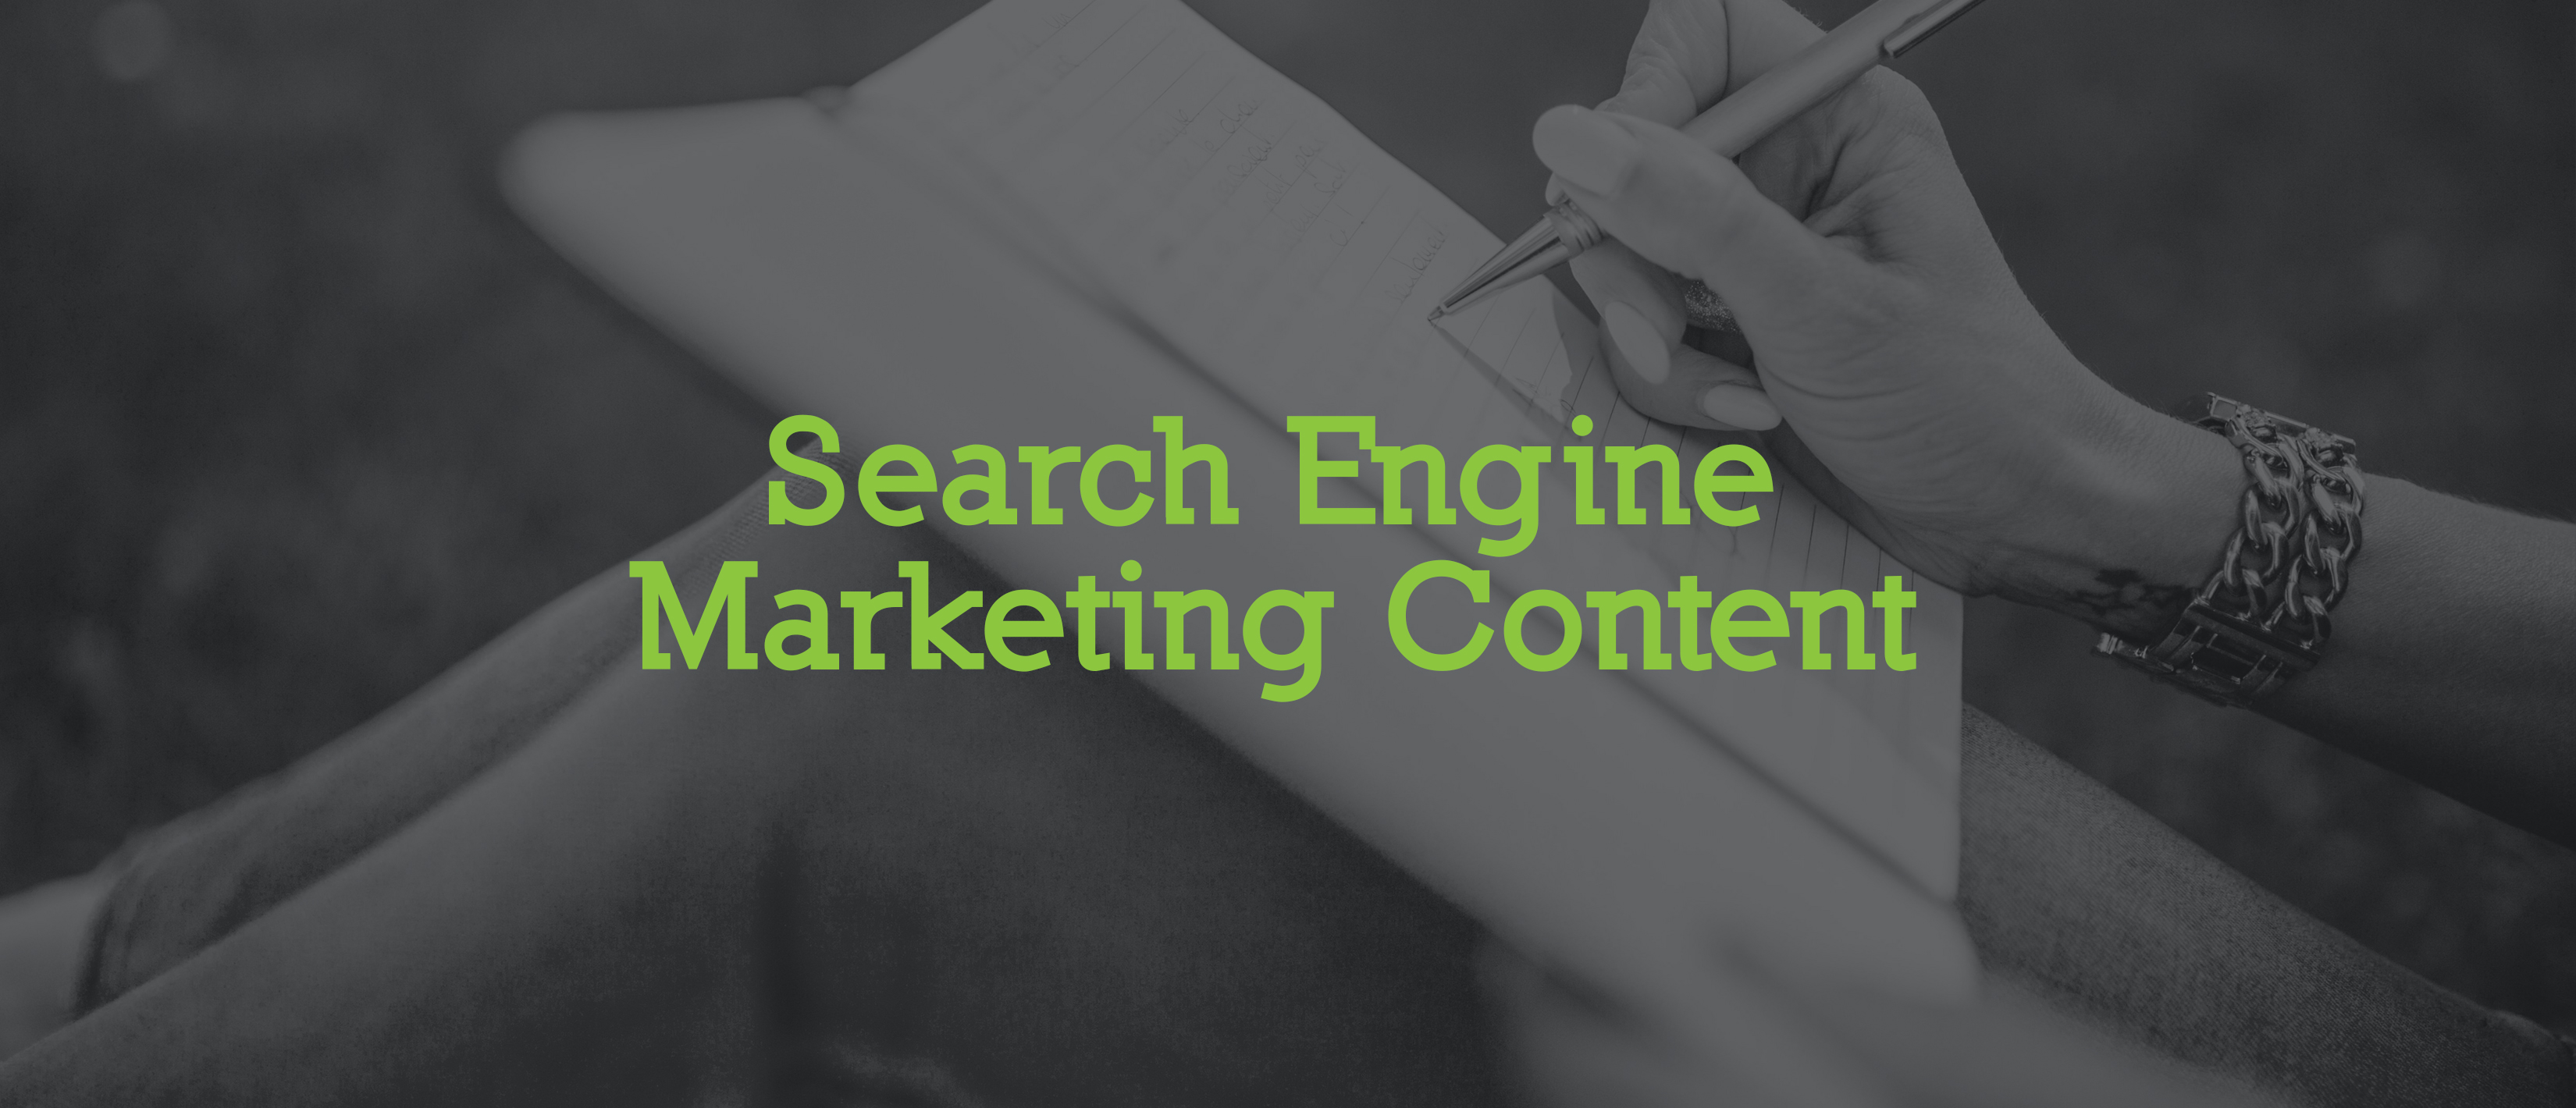 Search Engine Marketing Content provider